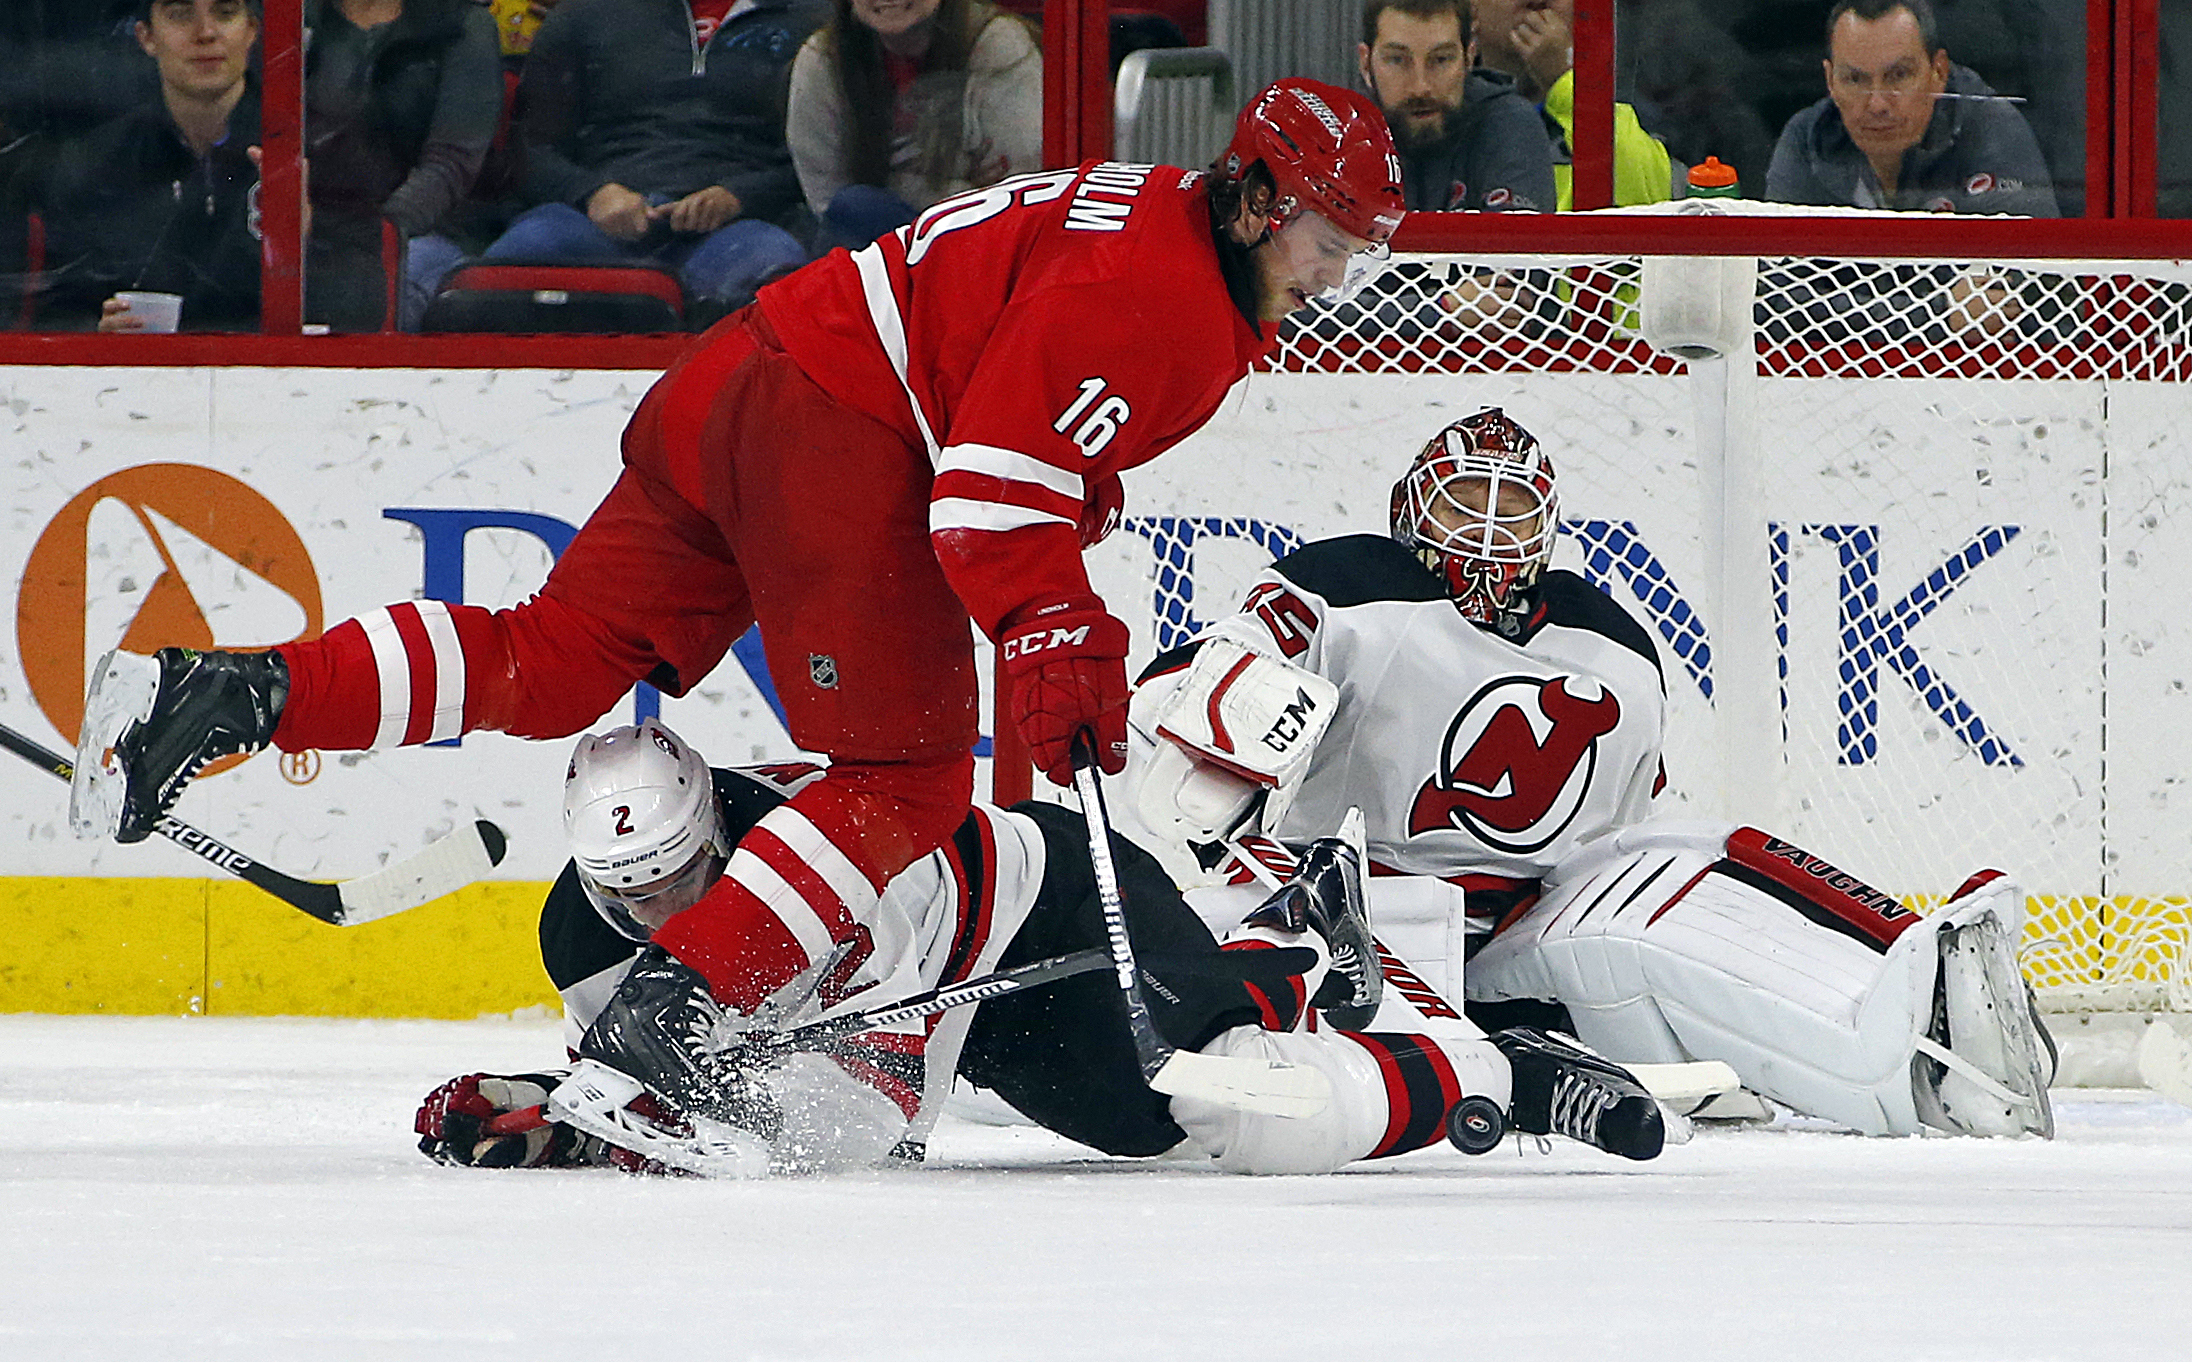 Carolina Hurricanes' Elias Lindholm (16) of Sweden, collides with New Jersey Devils' Adam Larsson (5) in front of goalie Cory Schneider (35) during the second period of an NHL hockey game, Saturday, Dec. 26, 2015, in Raleigh, N.C. (AP Photo/Karl B DeBlake